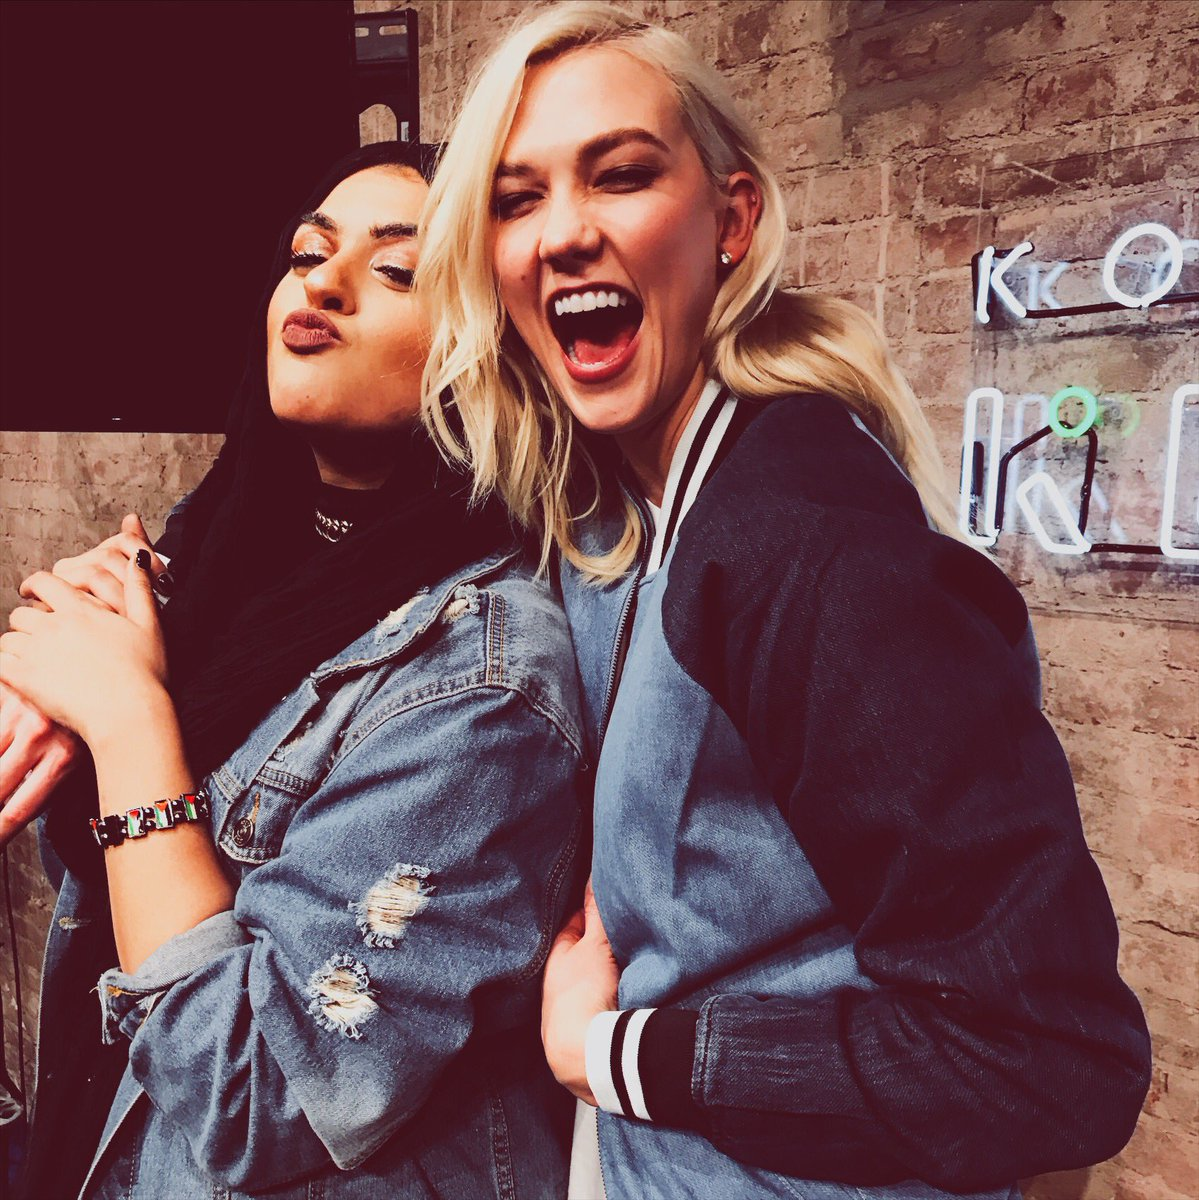 This #MuslimWomensDay, celebrate a Muslim woman in your life. @xoamani thank you for using your voice and @muslimgirl to amplify voices and opportunities for young girls.